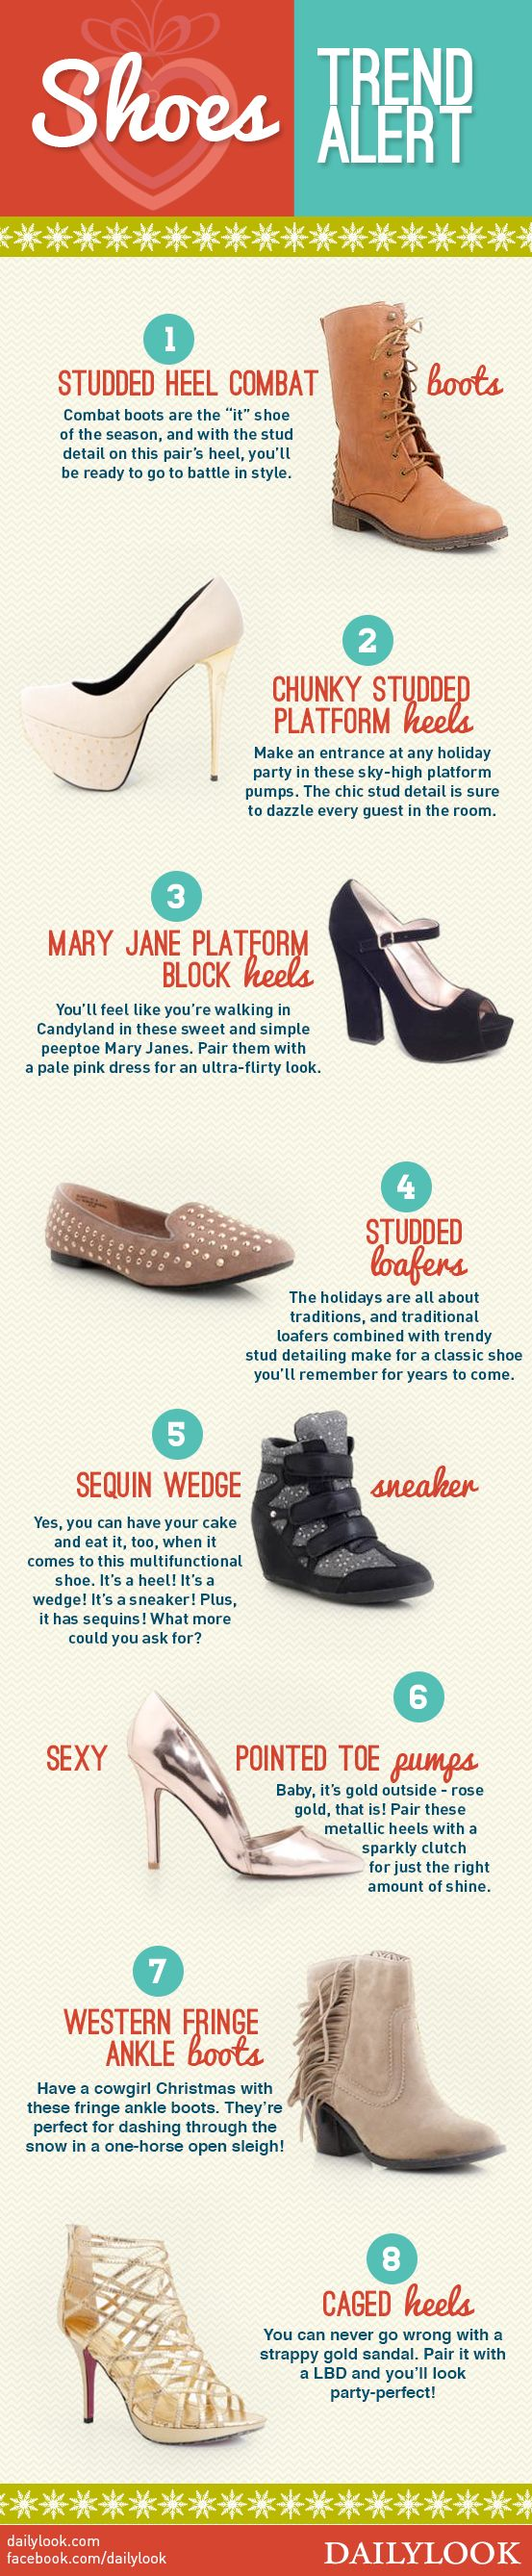 Shoes Trend Alert! A DailyLook Style Guide. Click the image link to shop these shoes! @dailylook #dailylook #dailylooksugarandspice